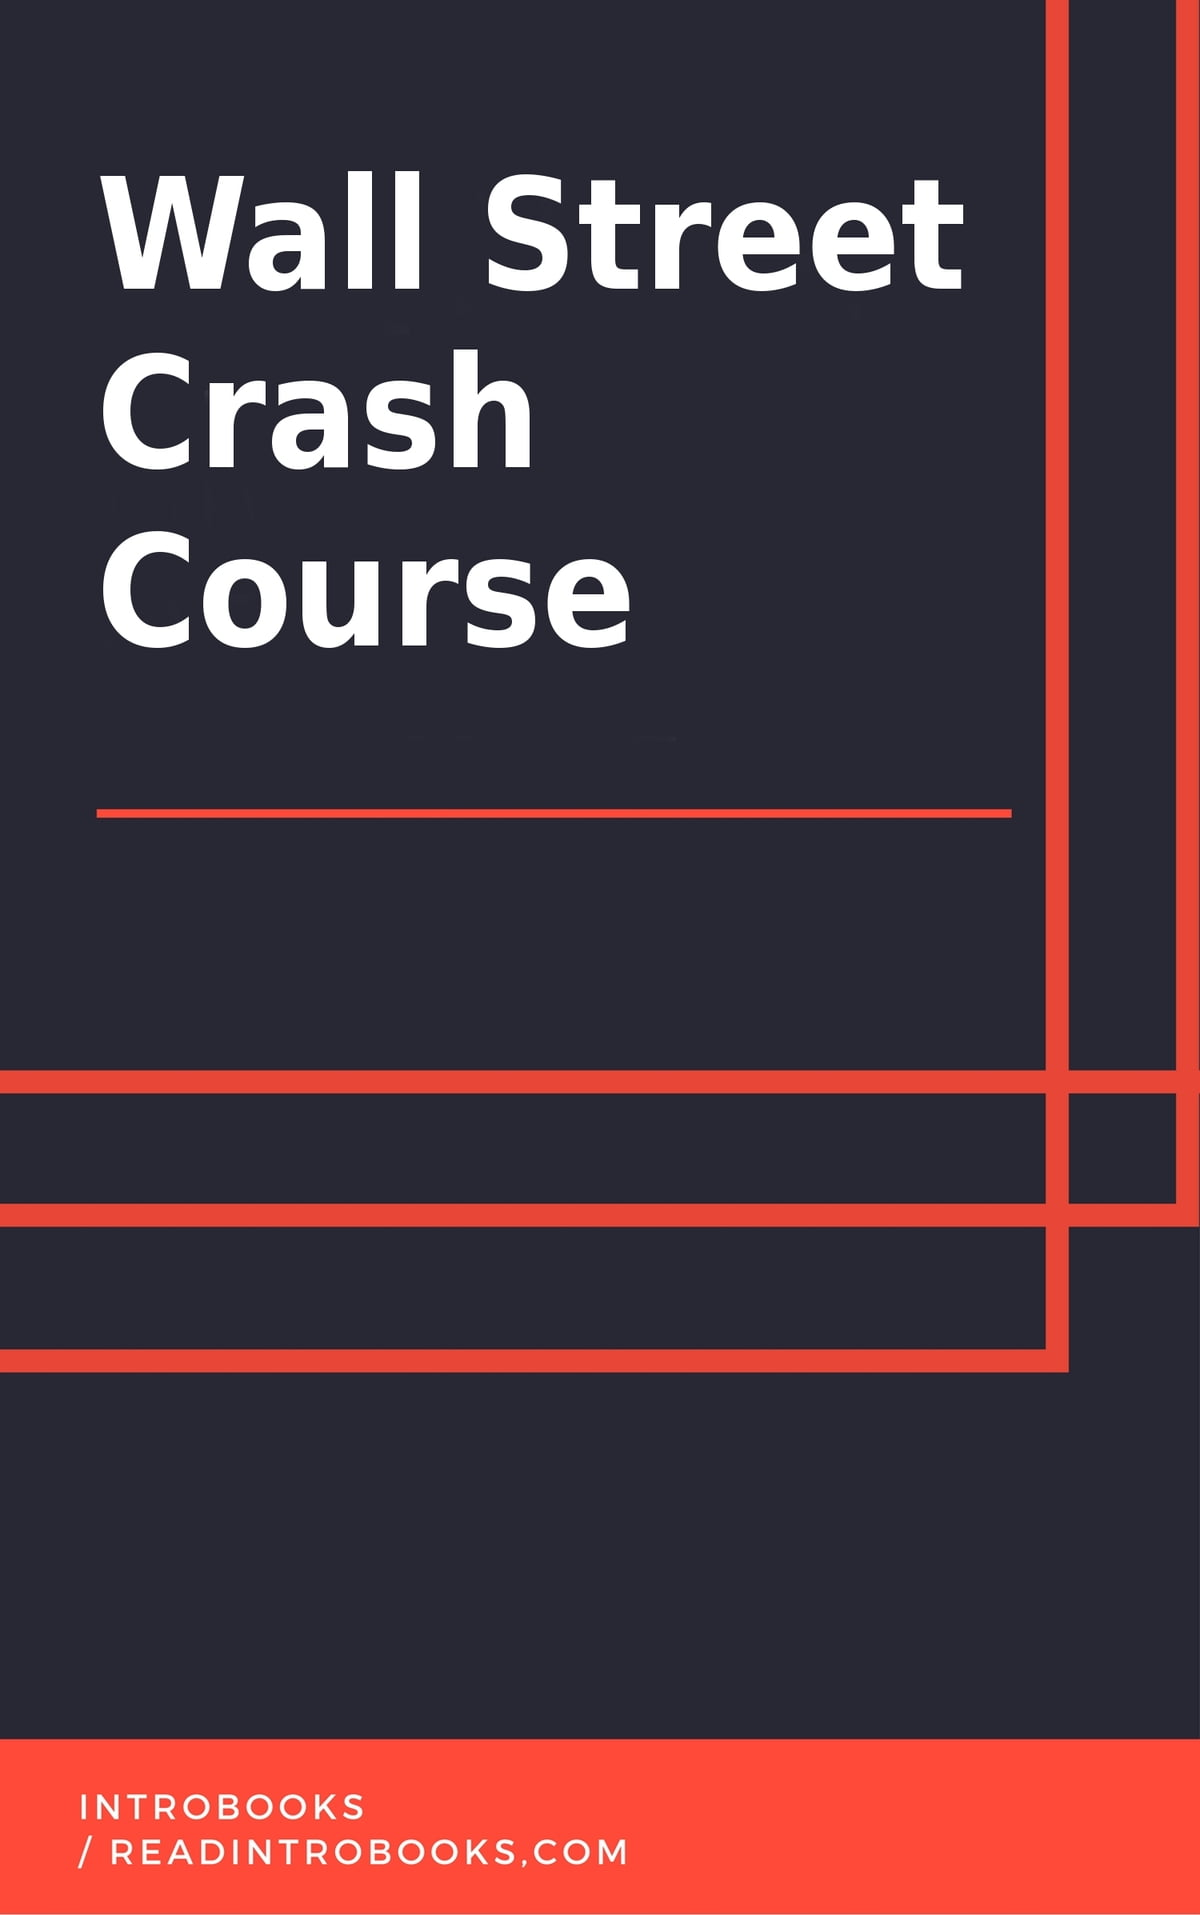 Wall Street Crash Course eBook by IntroBooks - 9781370148882 | Rakuten Kobo